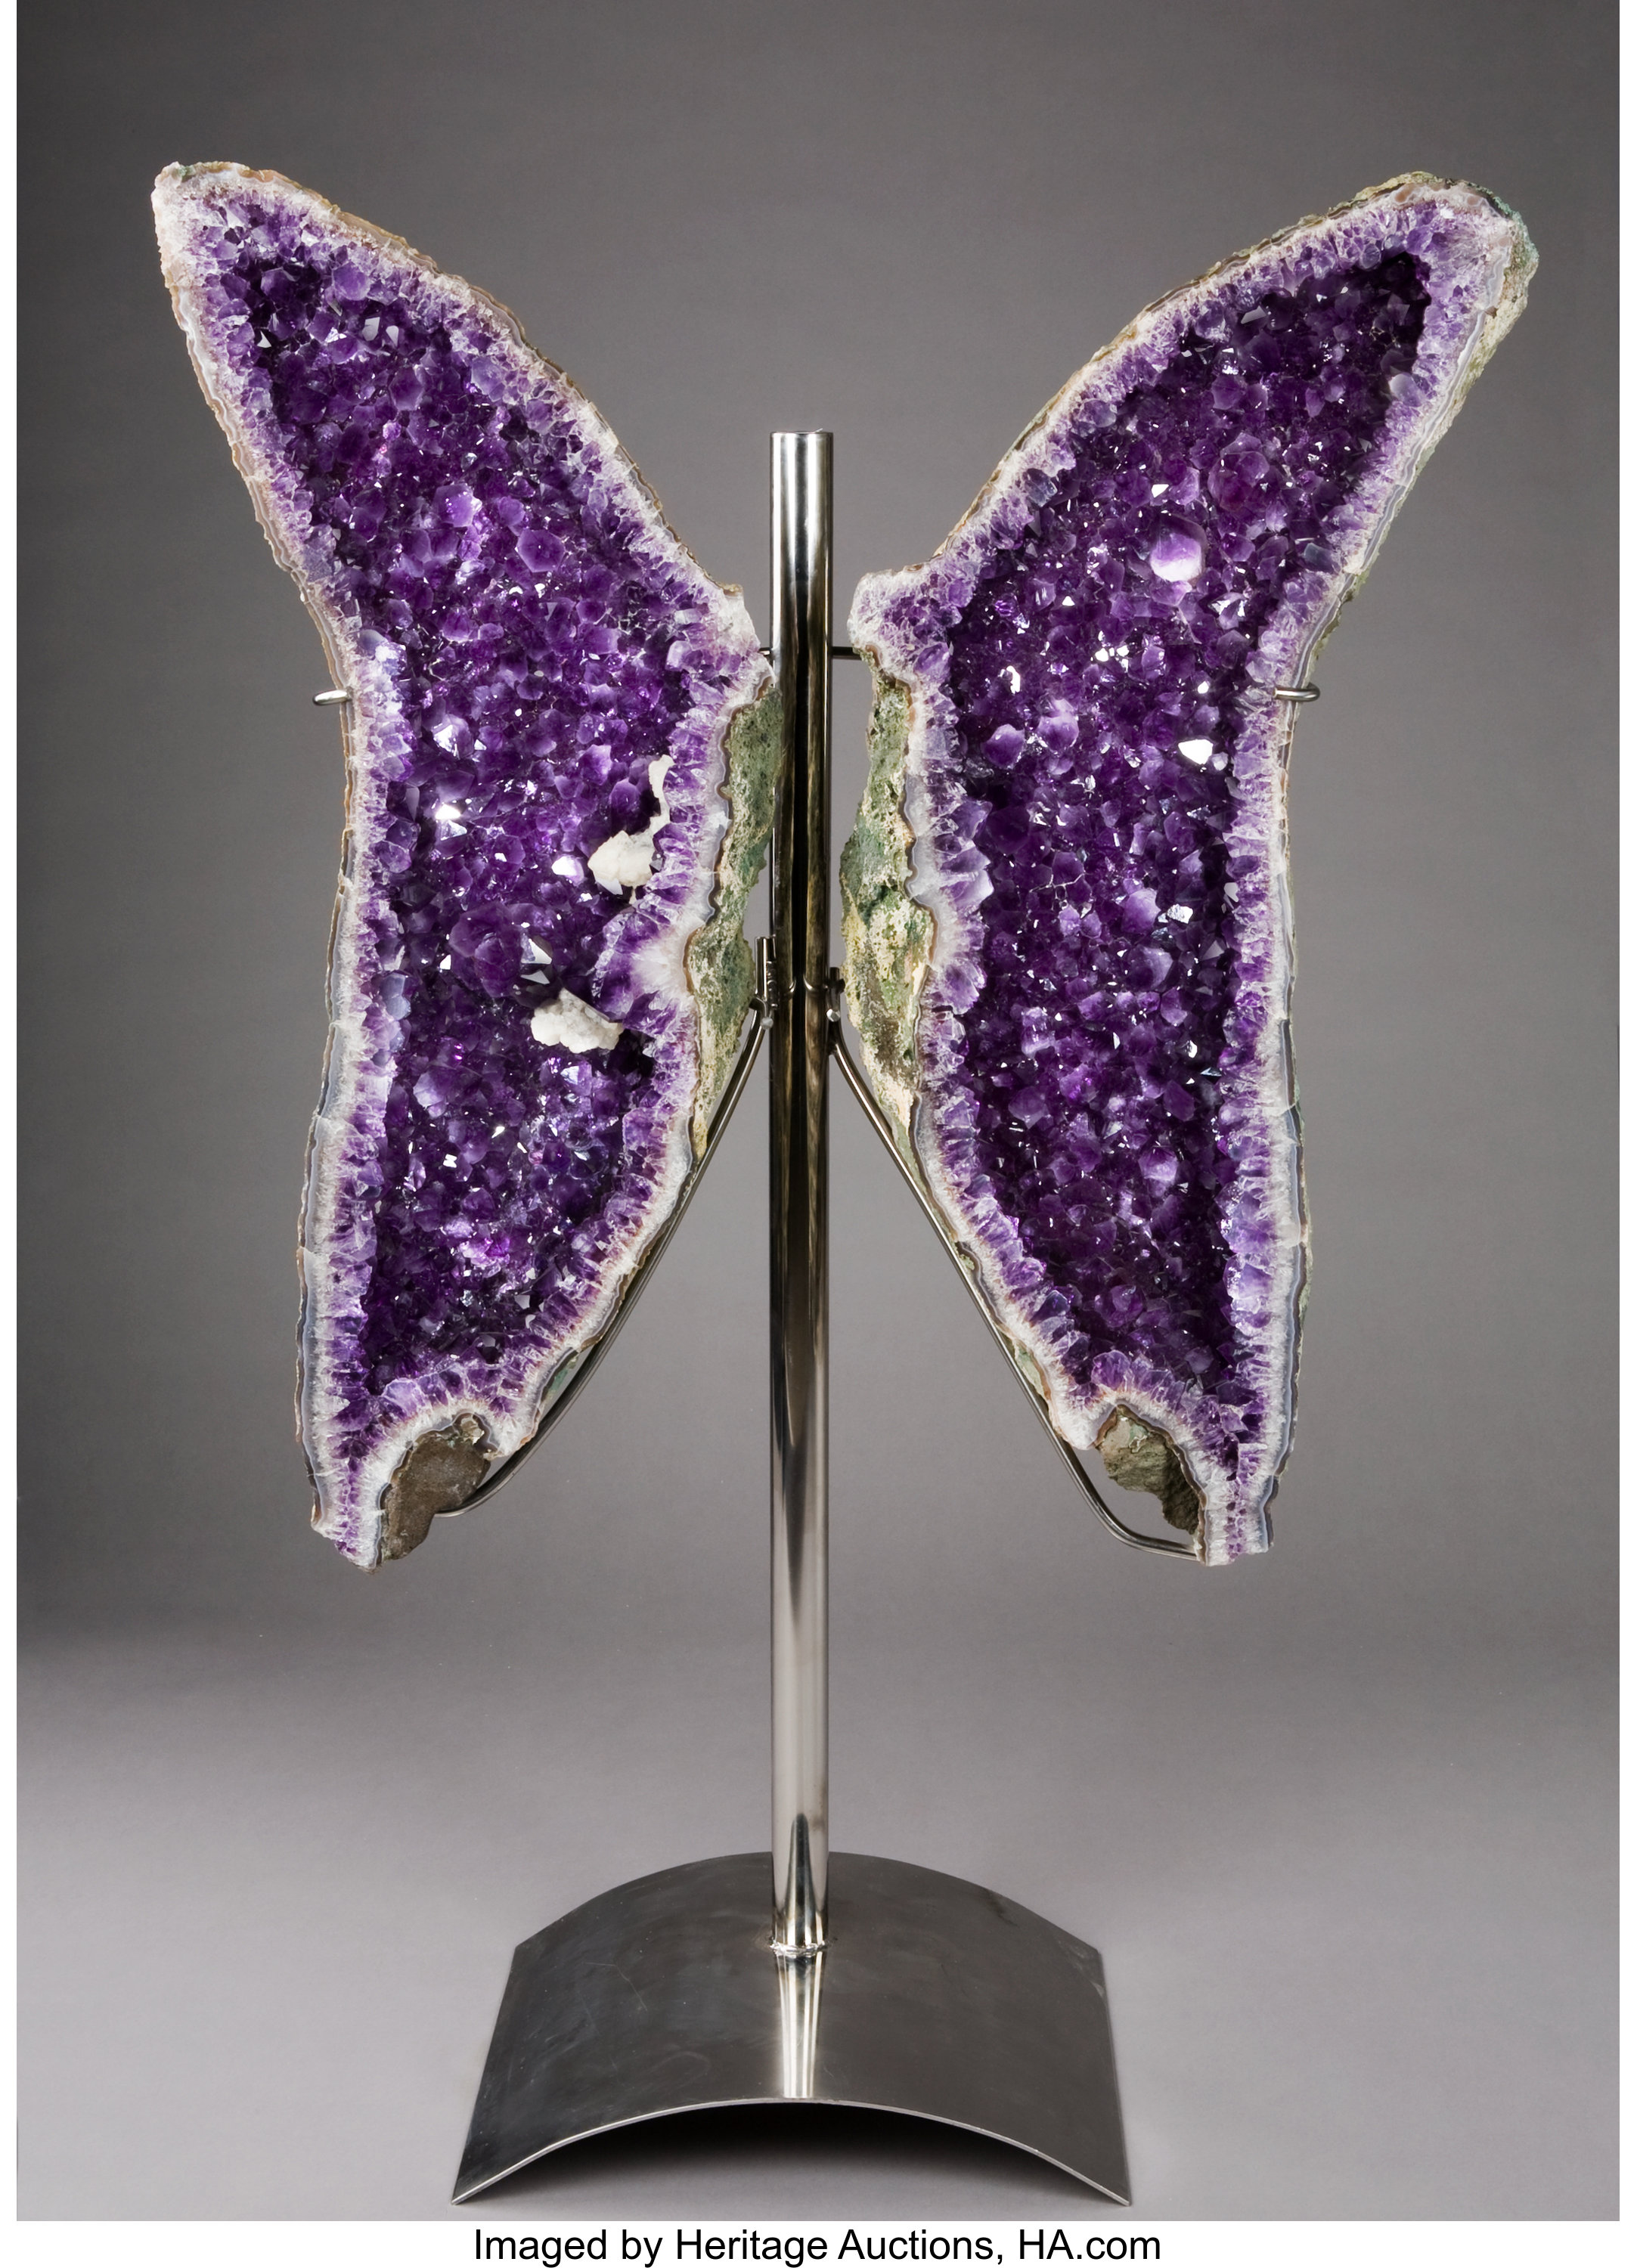 Butterfly Amethyst Sculpture Minerals Decorative Lot 53134 Heritage Auctions